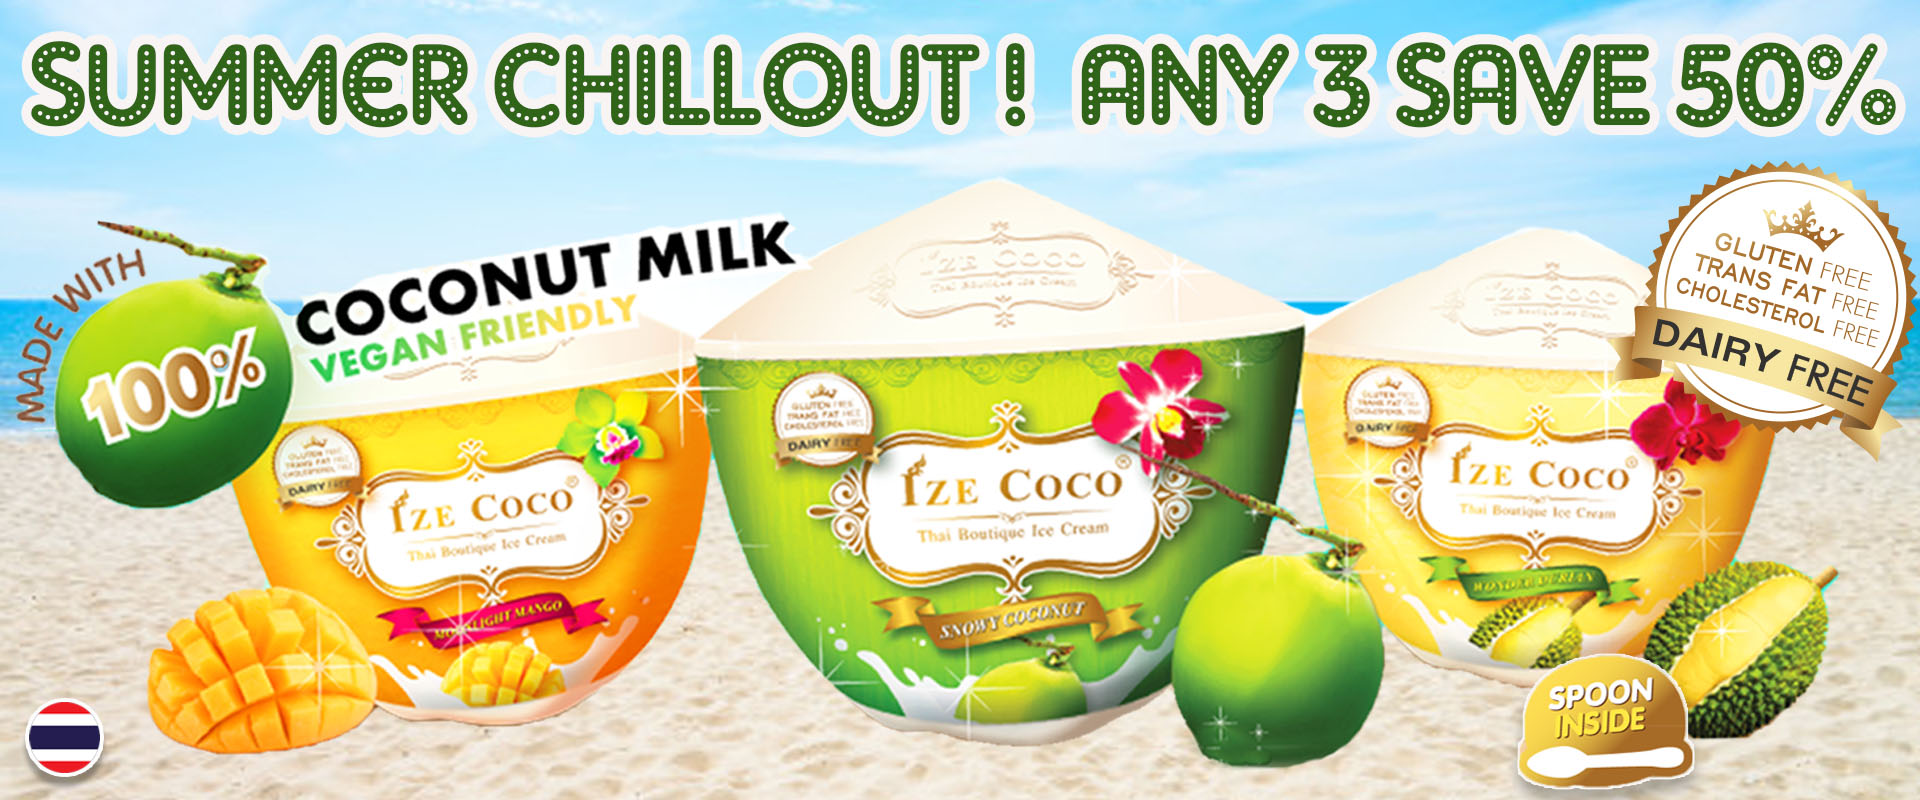 Ize Coco - Buy 3 Save 50%